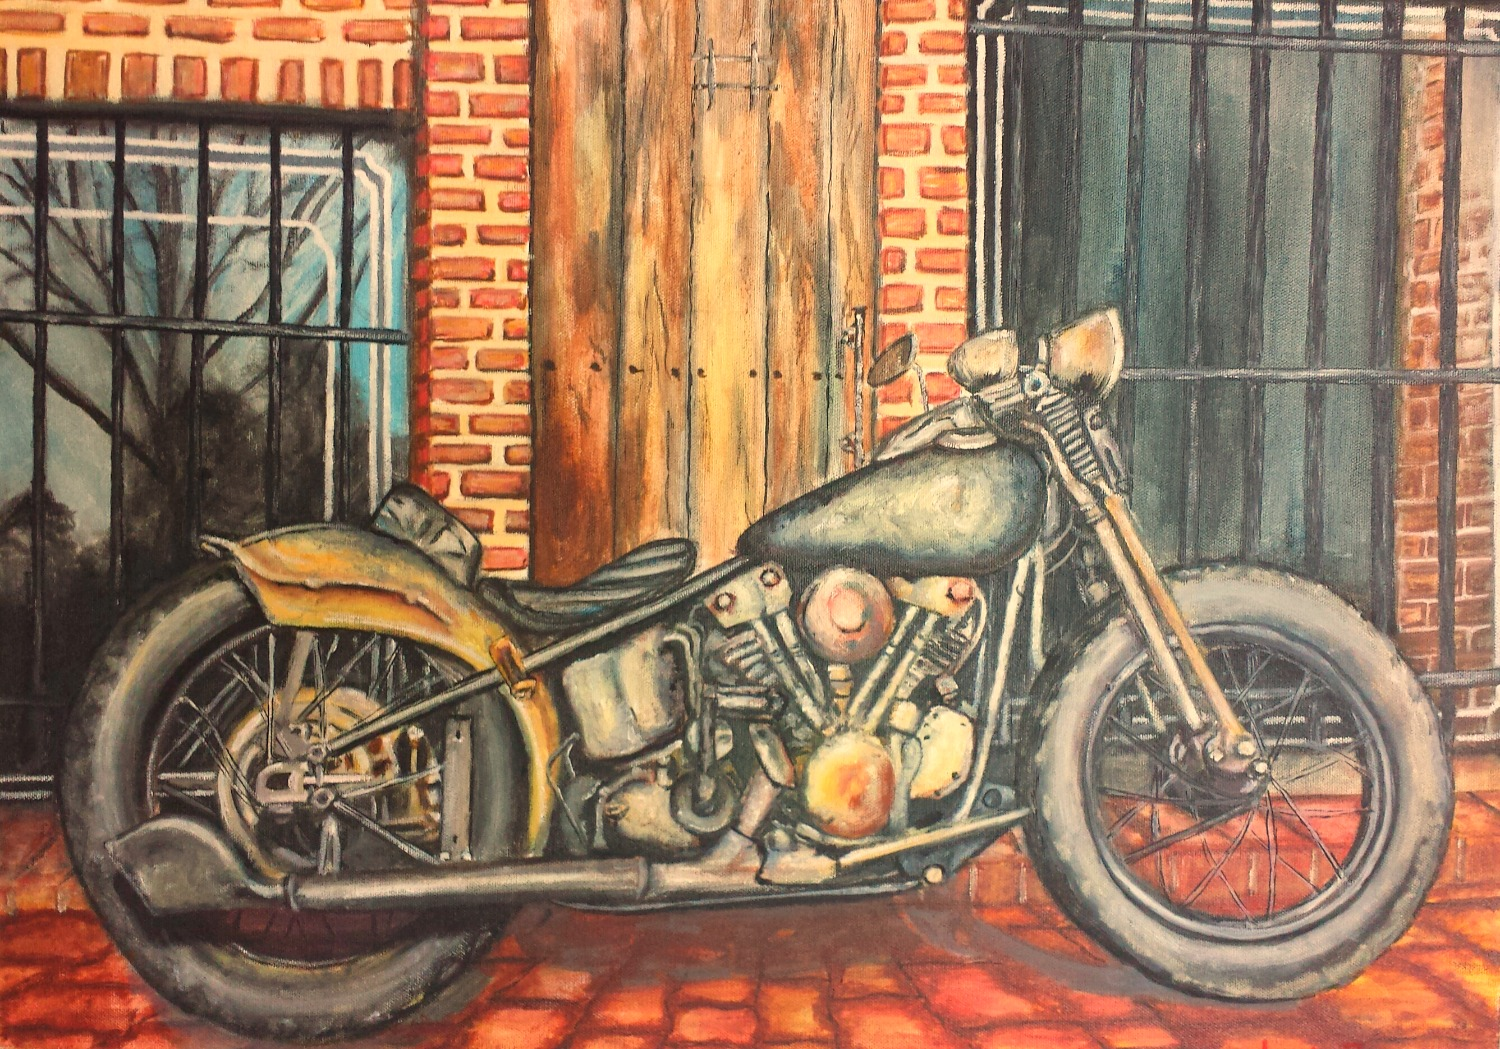 Motorcycle in Oil